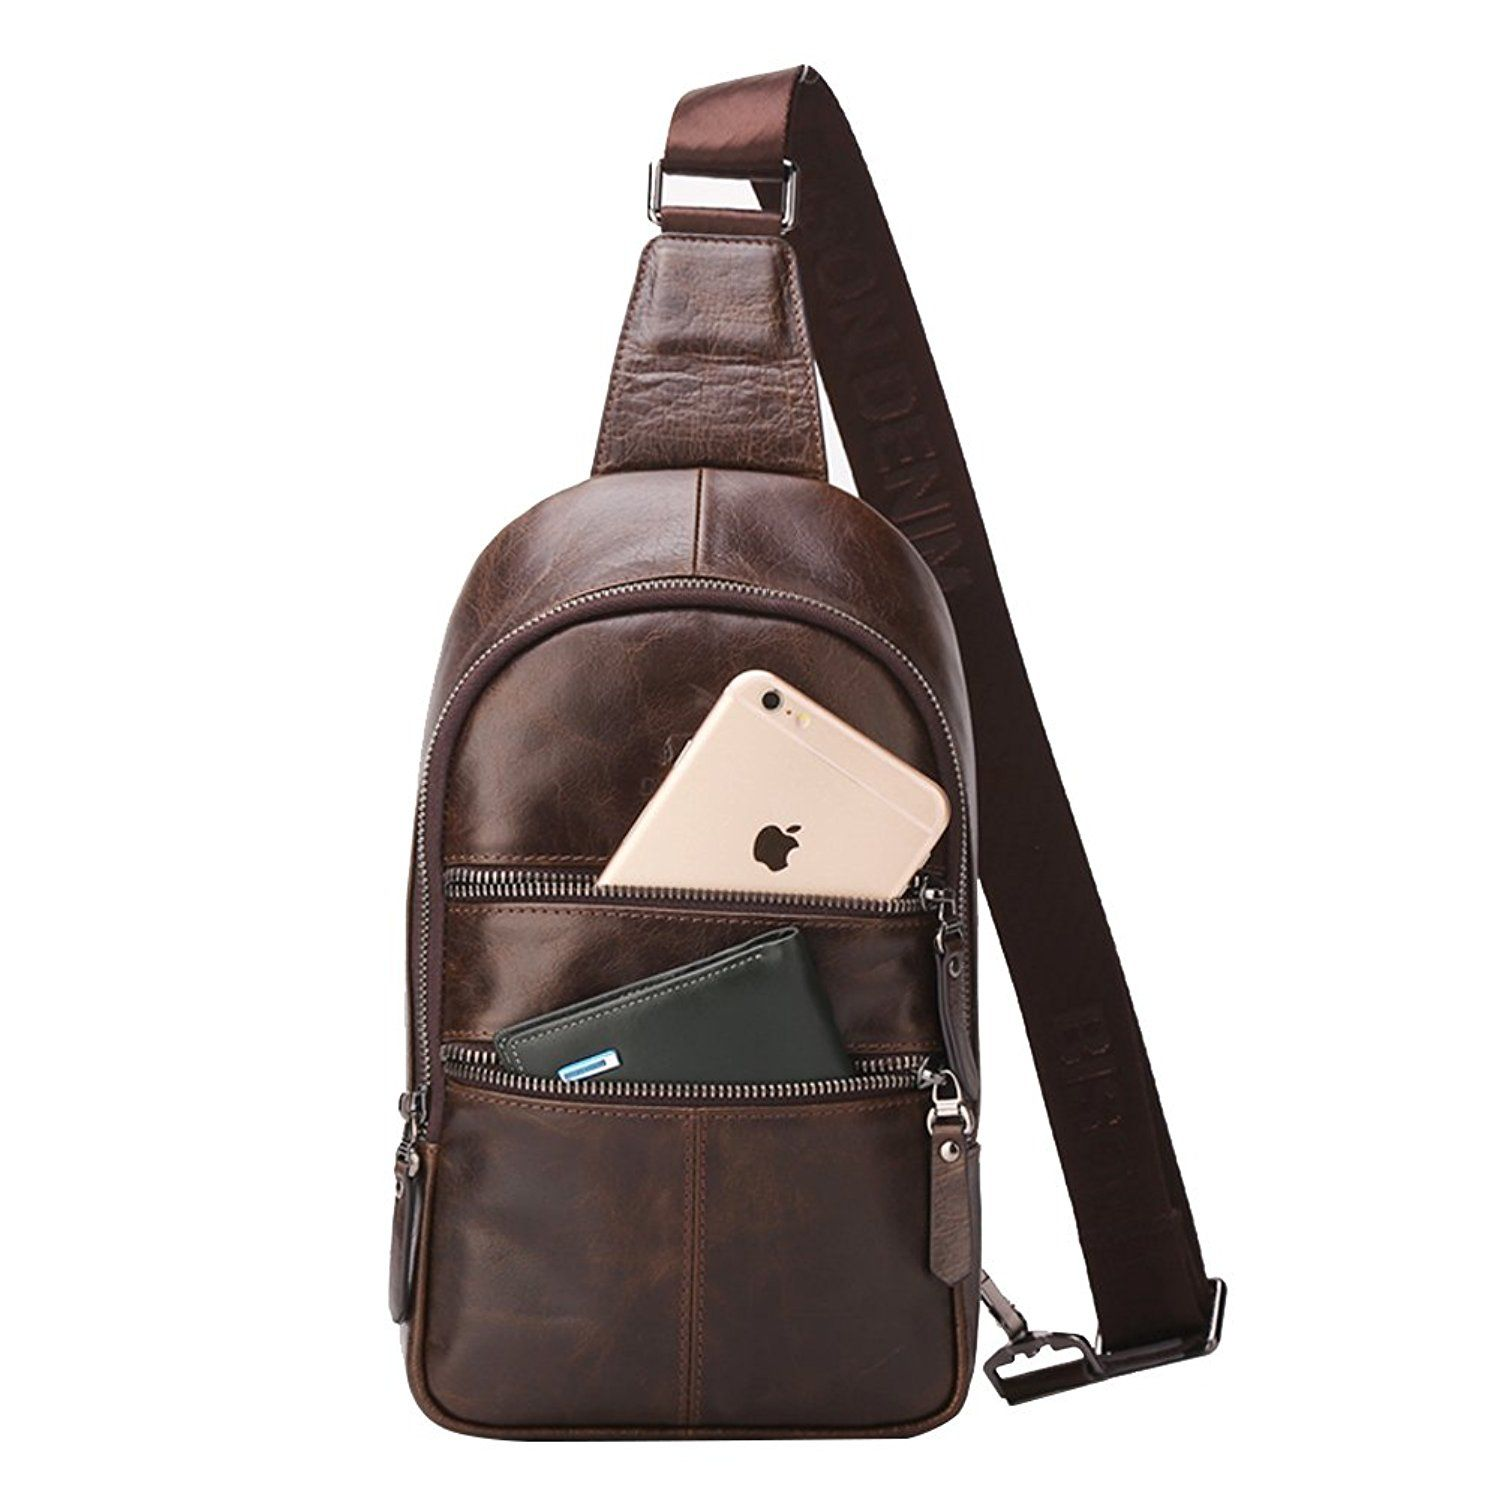 696f9968ced1 Mens Leather Hiking Backpack- Fenix Toulouse Handball